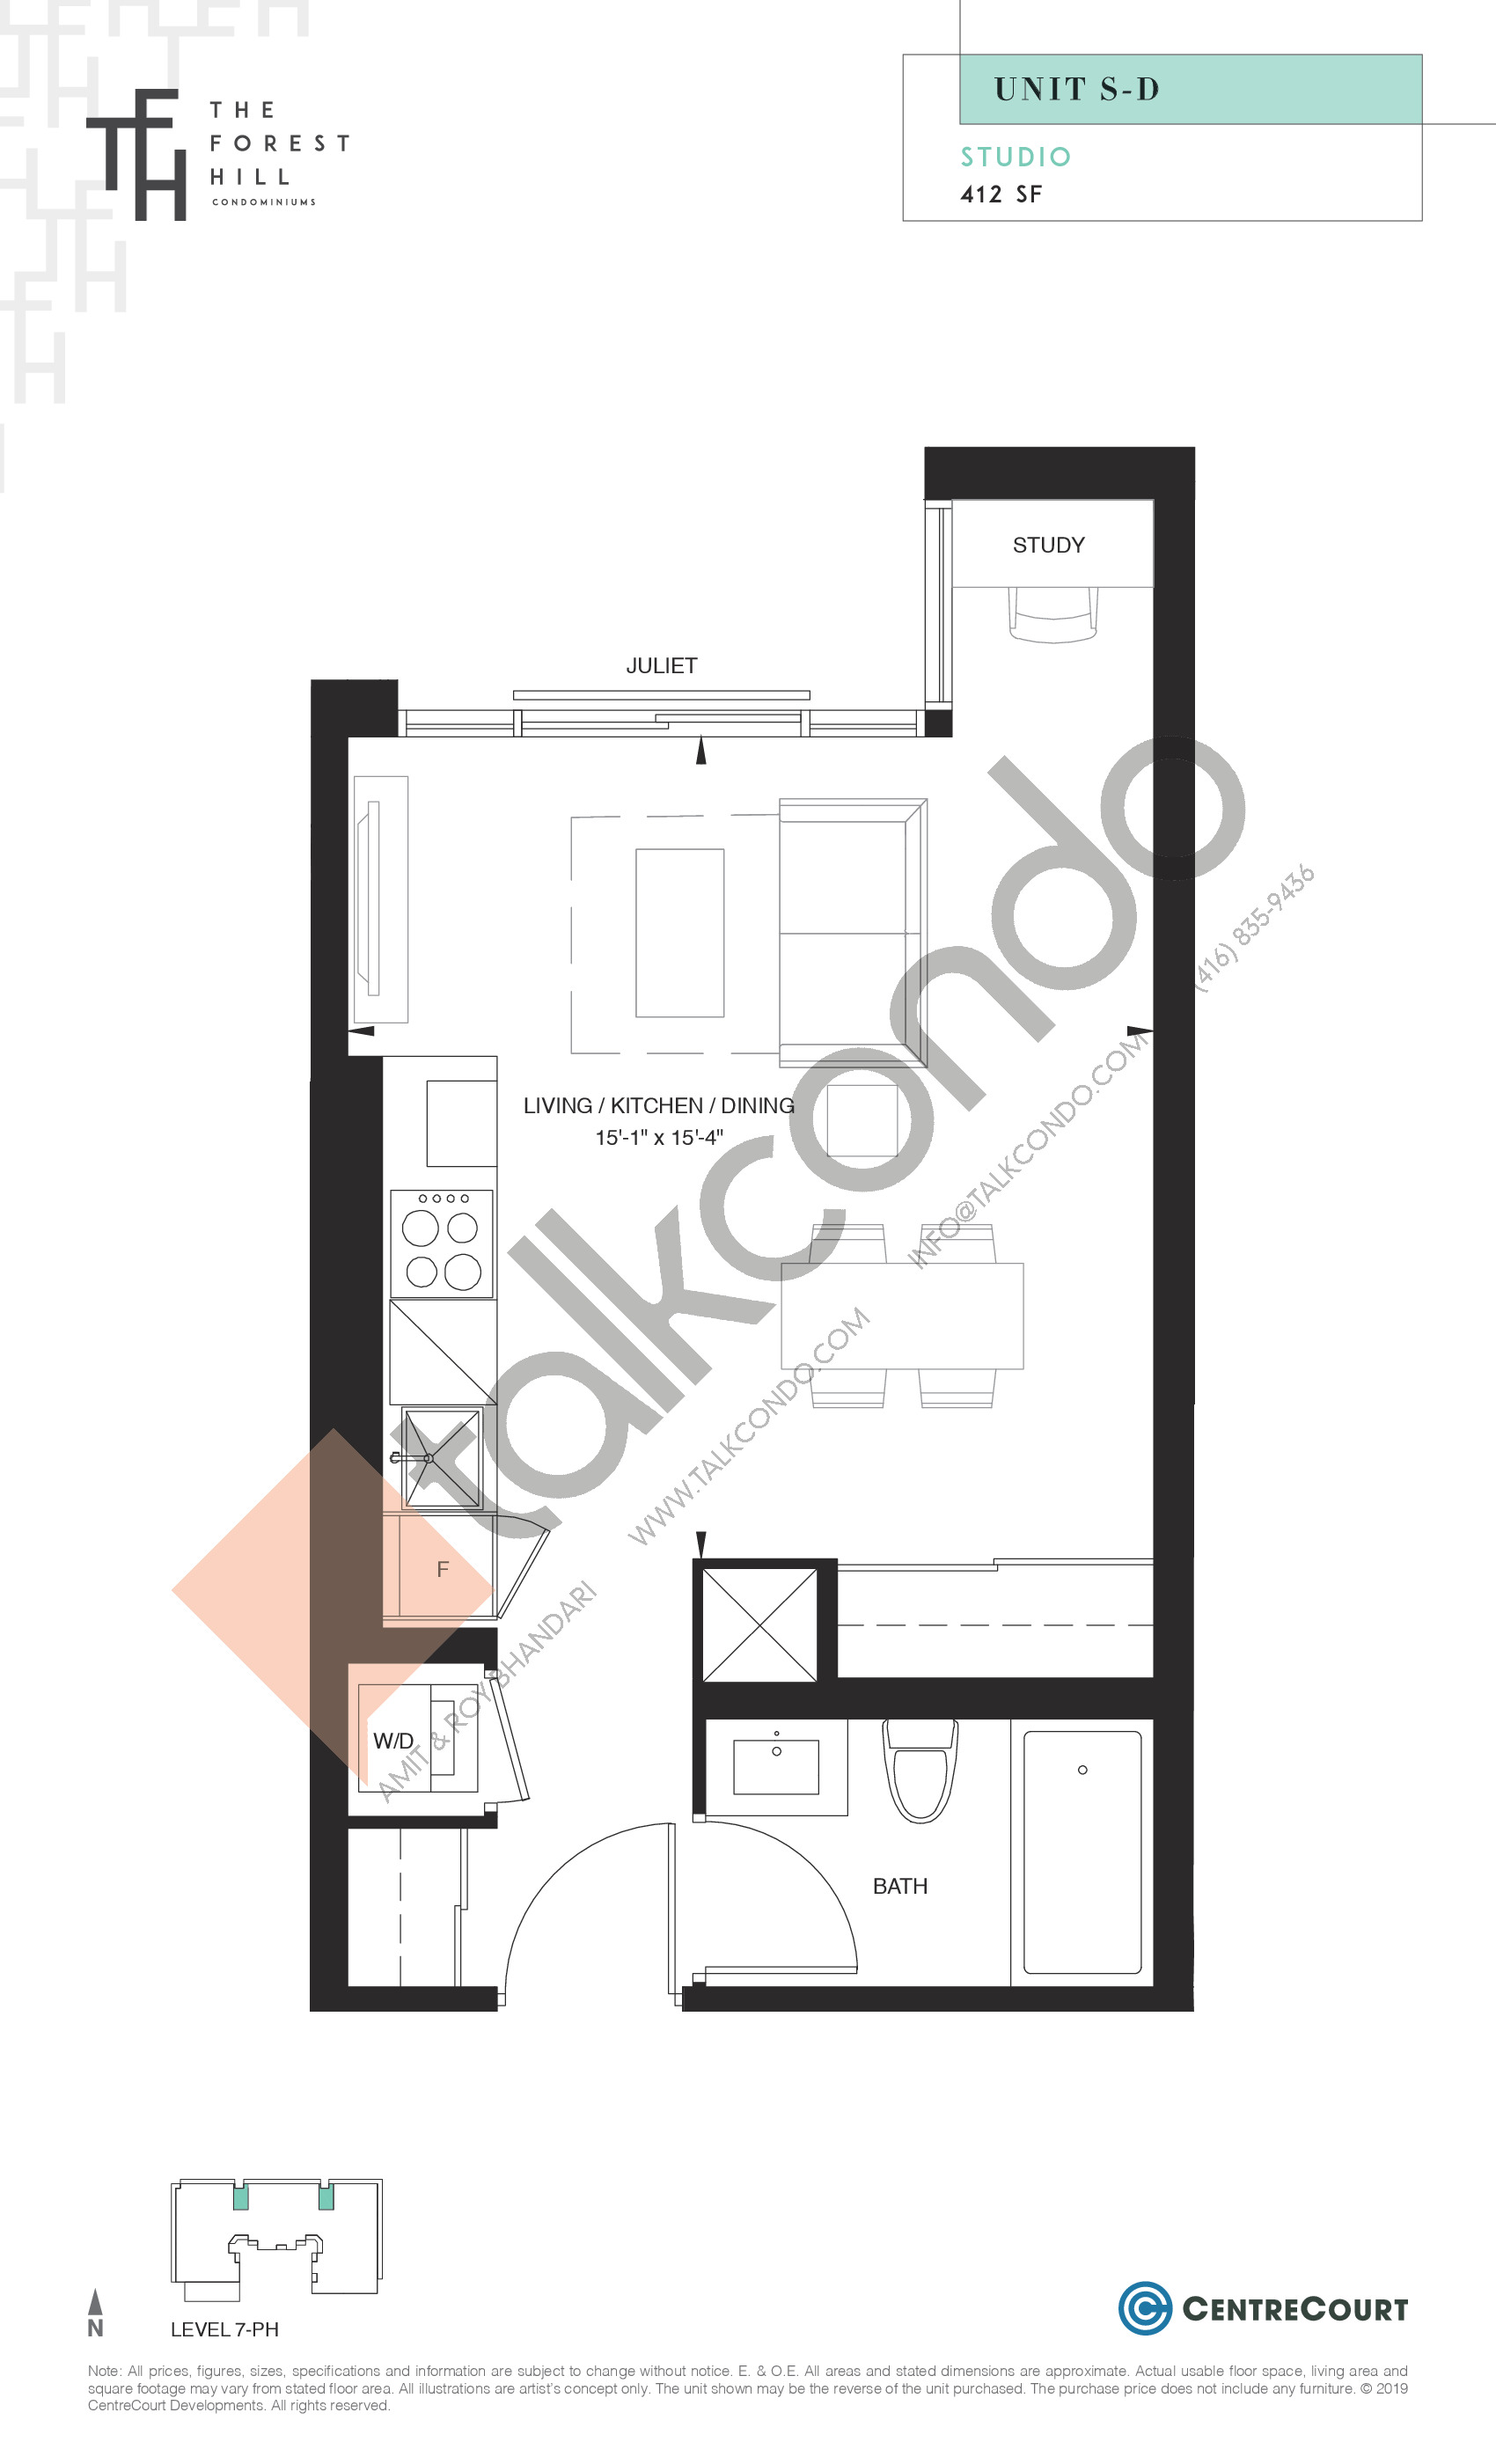 Unit S-D Floor Plan at The Forest Hill Condos - 412 sq.ft